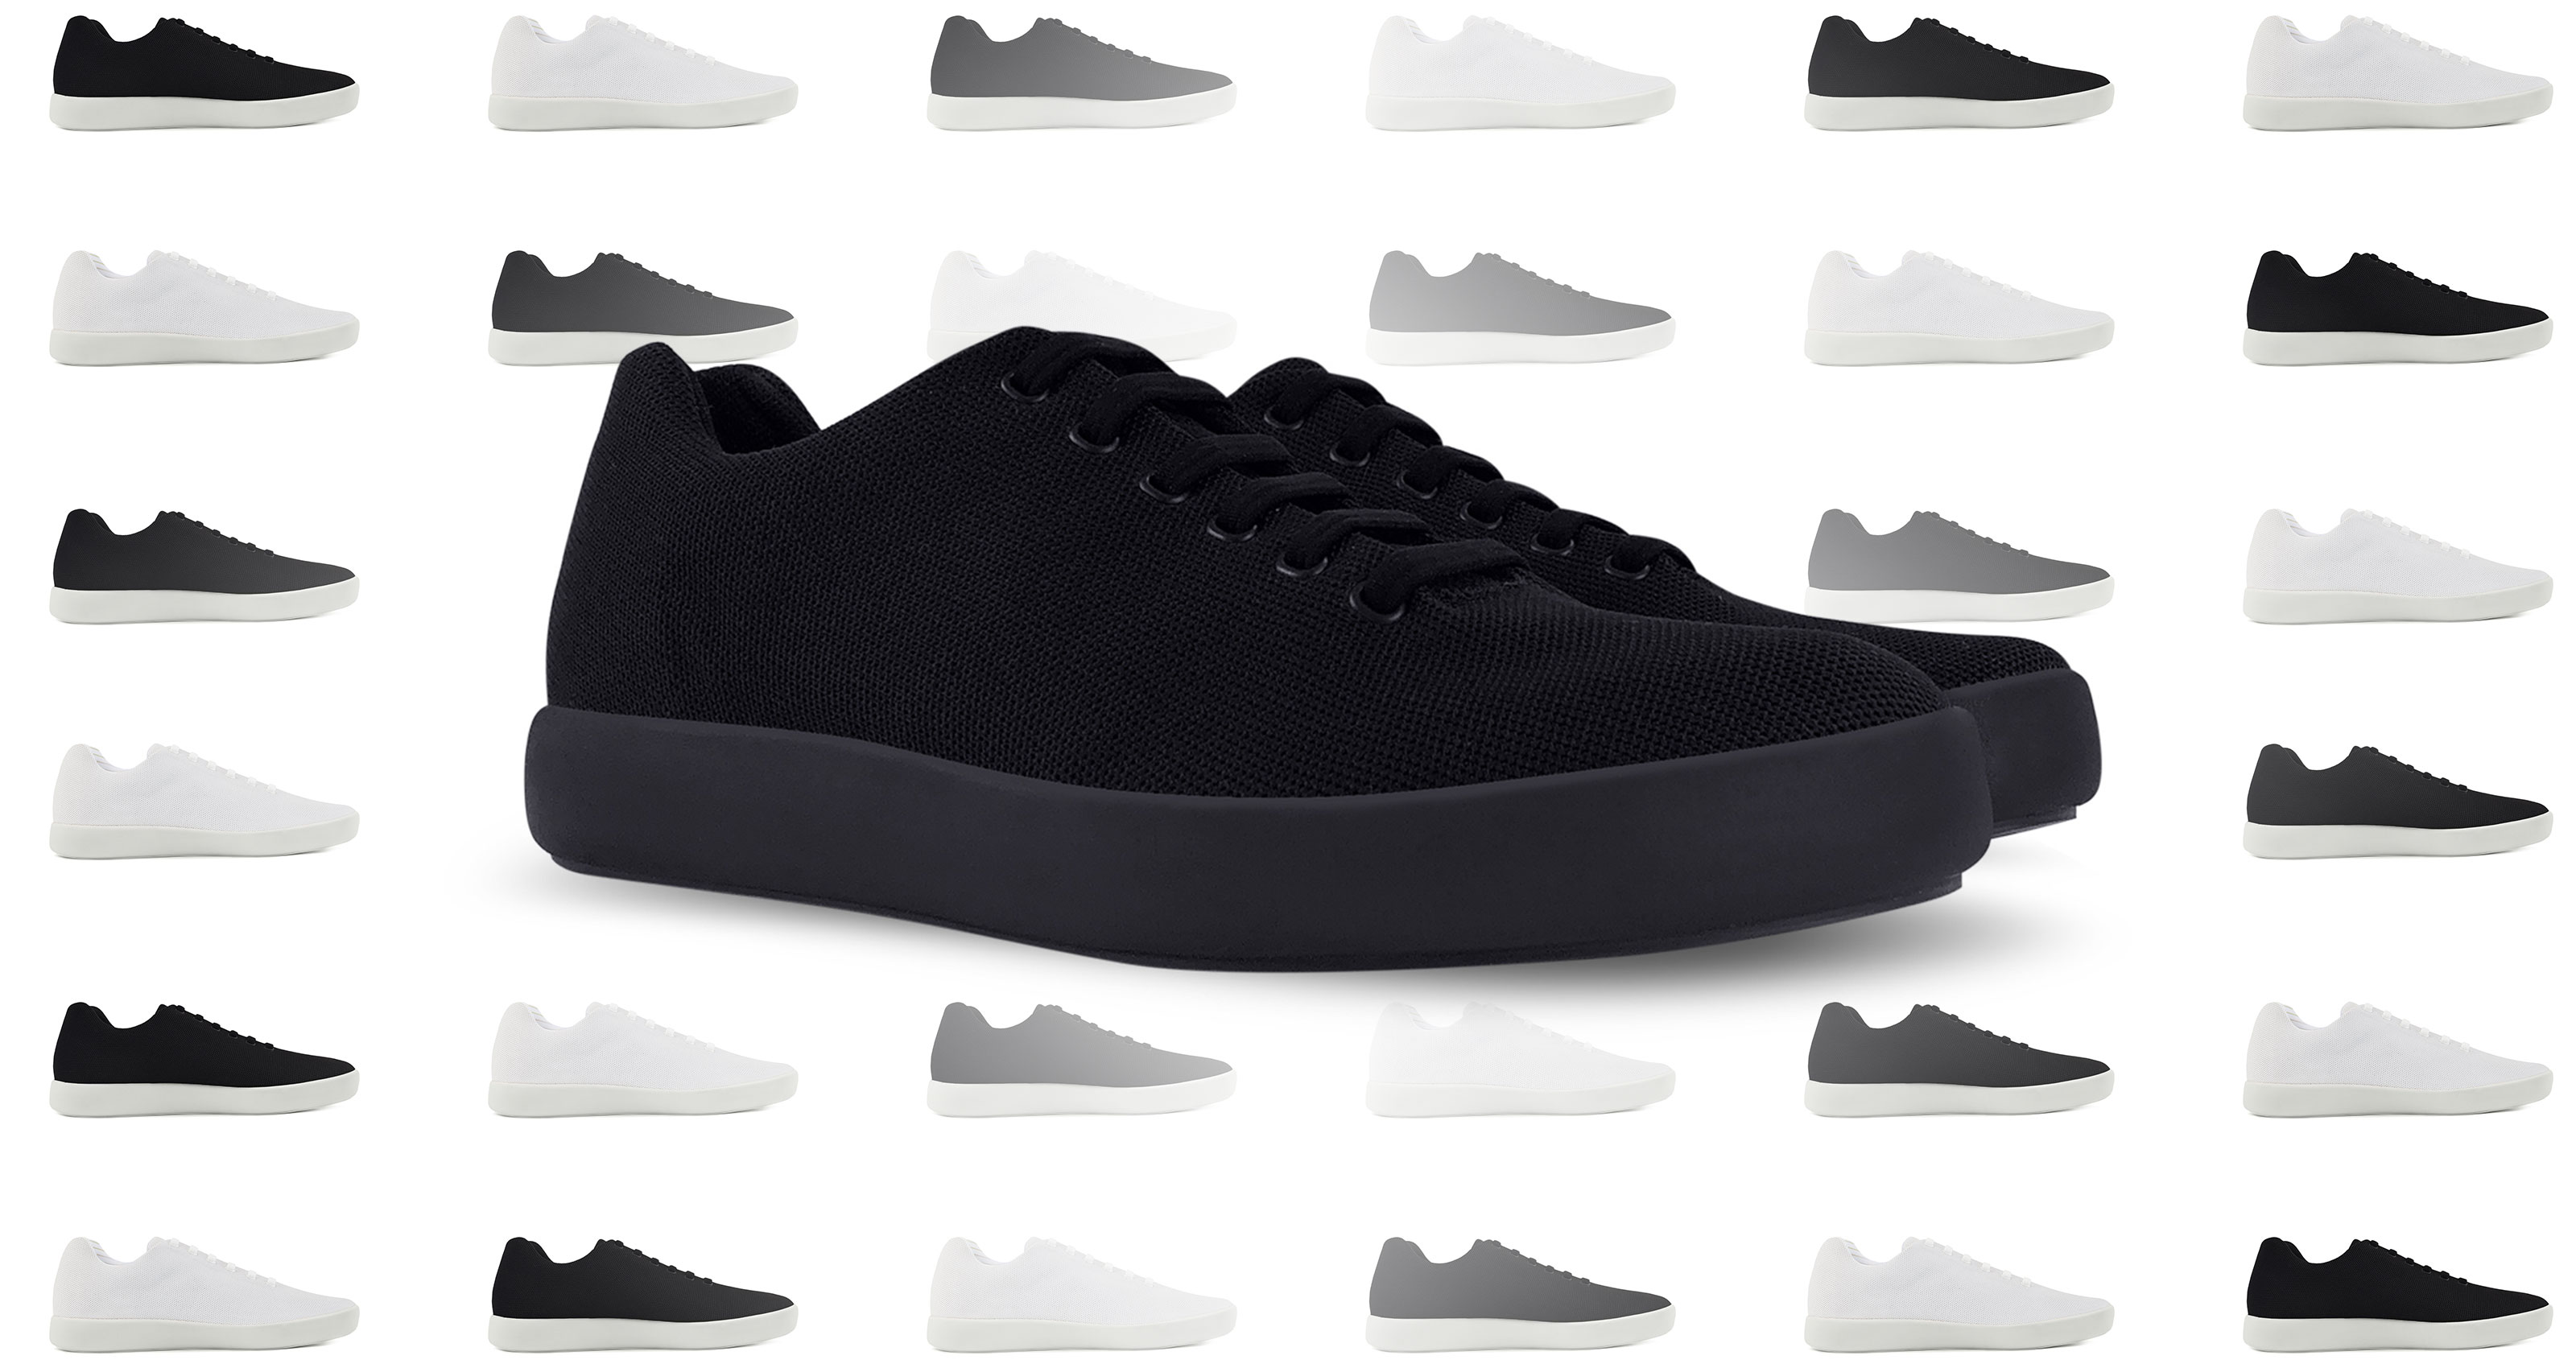 930b95907d Meet Atoms, the minimalist startup shoes you'll actually wear | TechCrunch